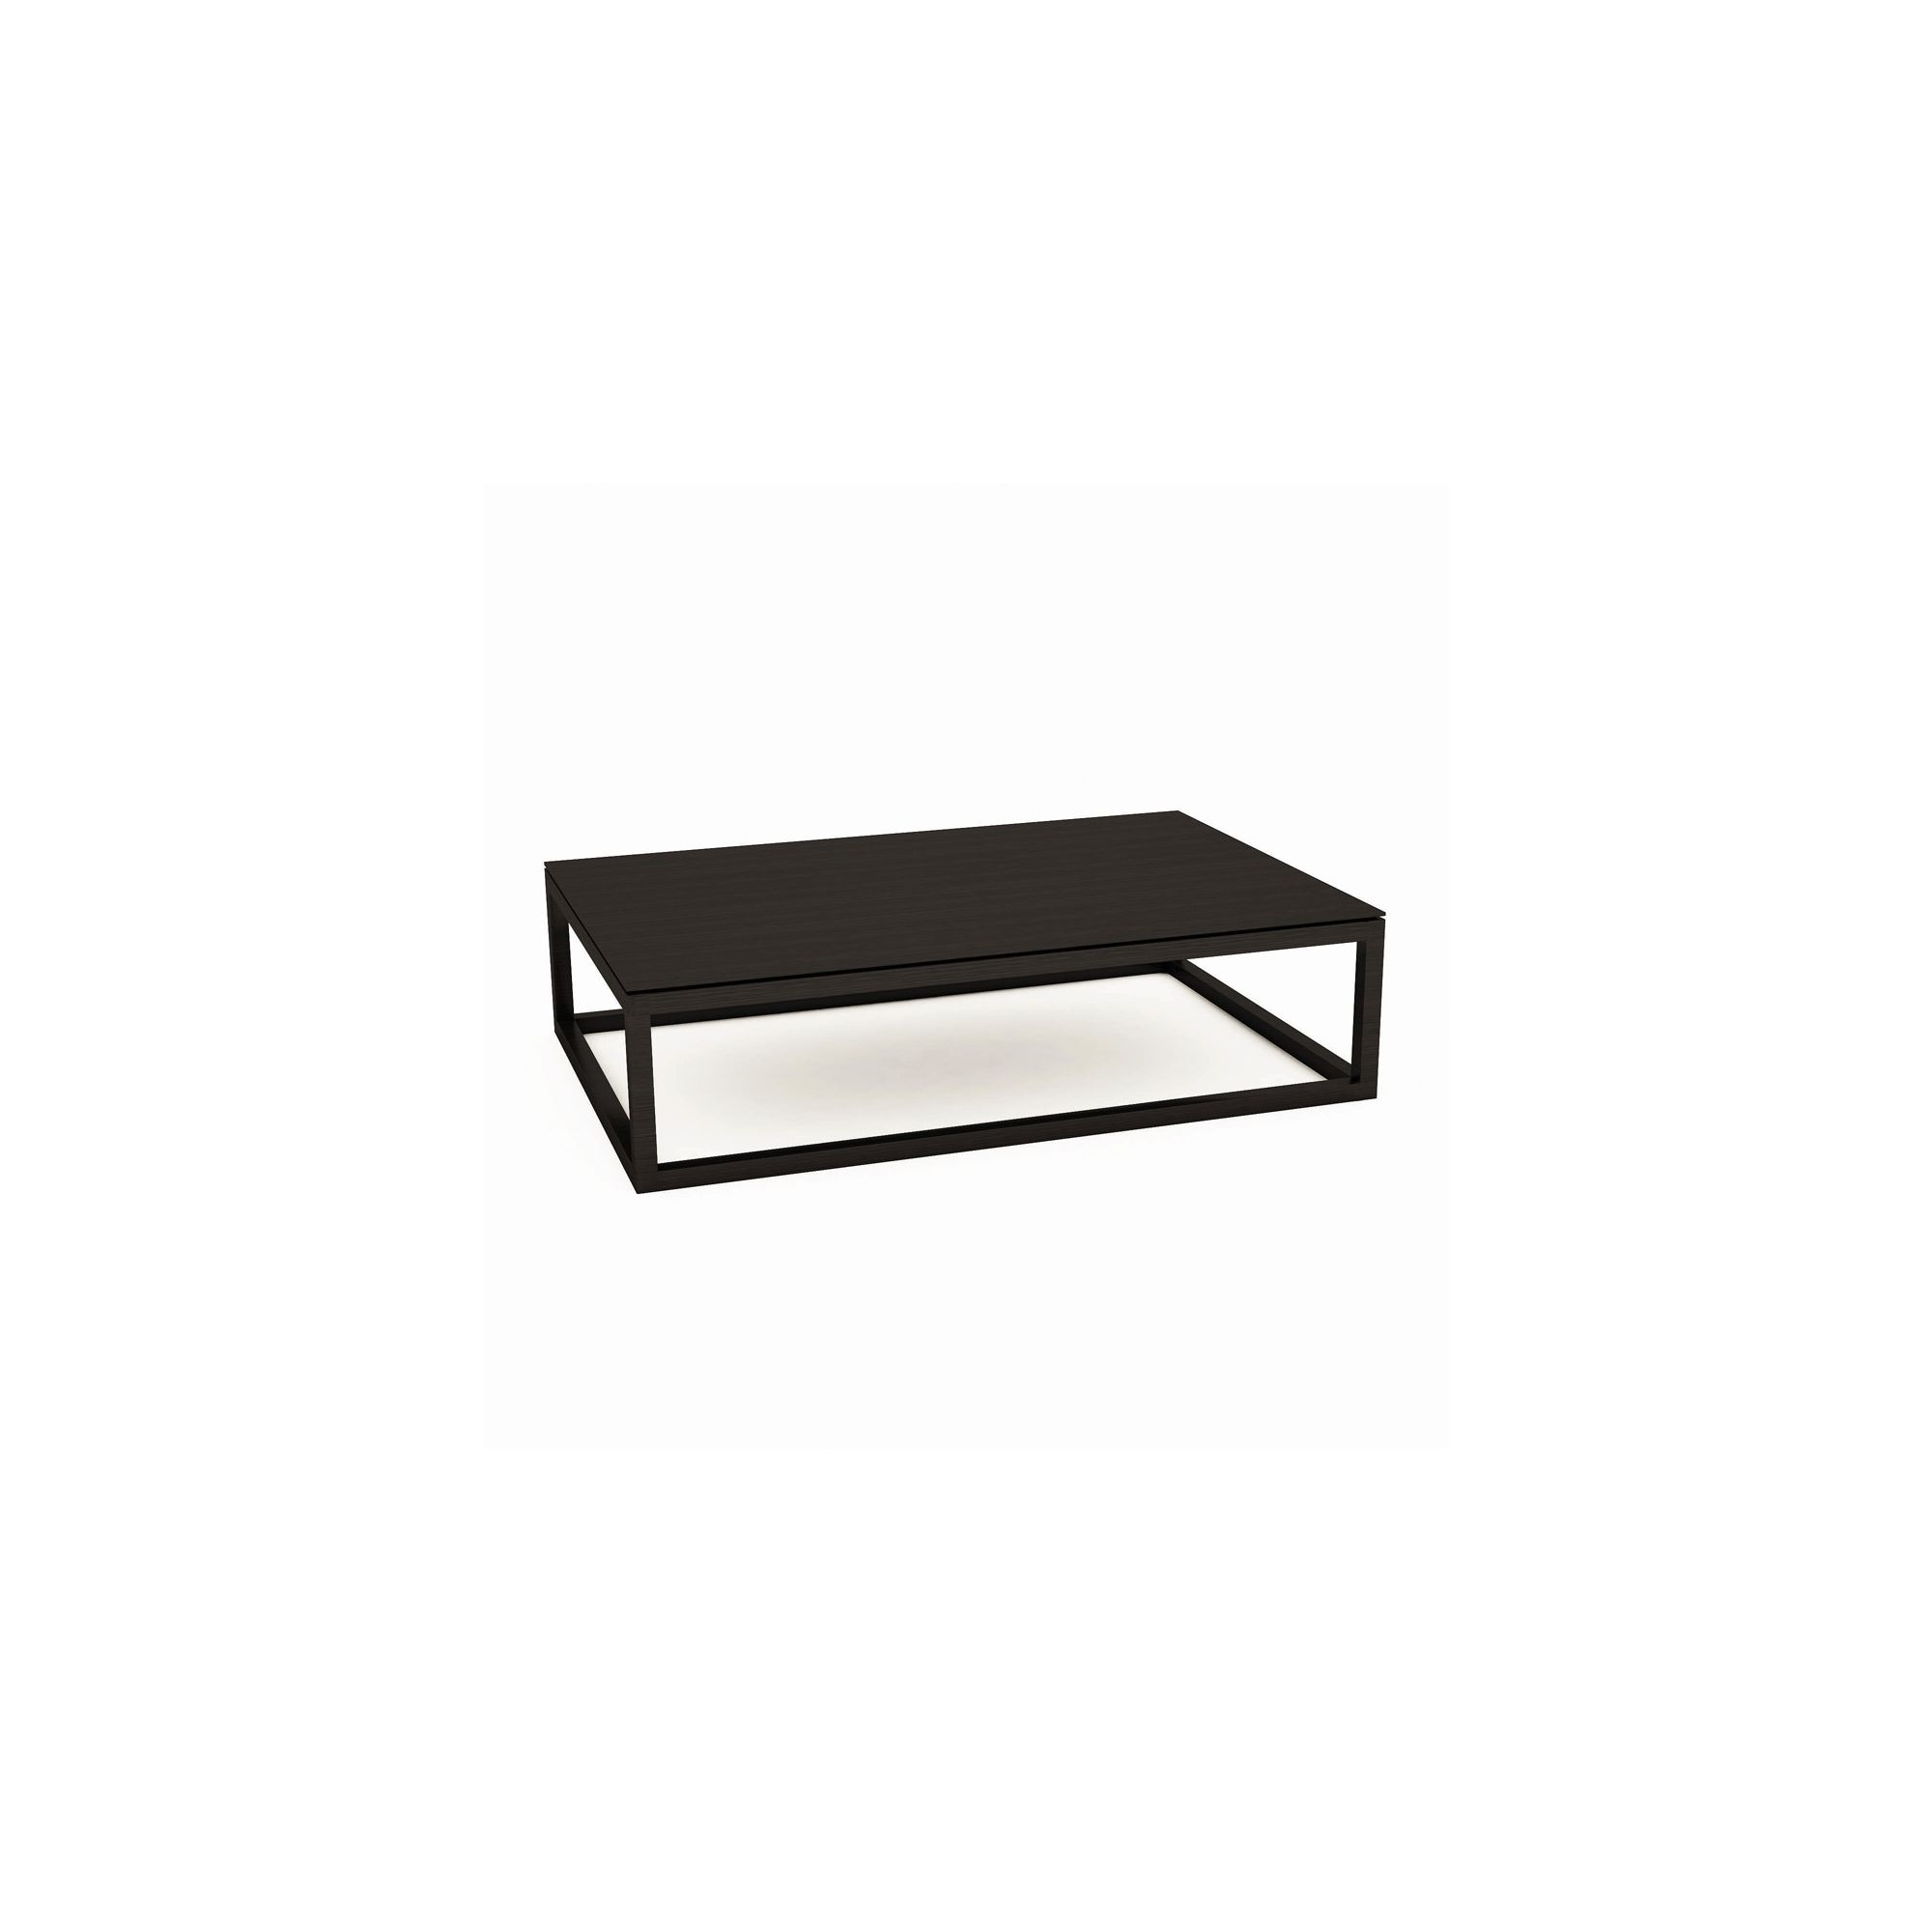 Gillmore Space Cordoba Rectangular Coffee Table in Wenge at Tesco Direct